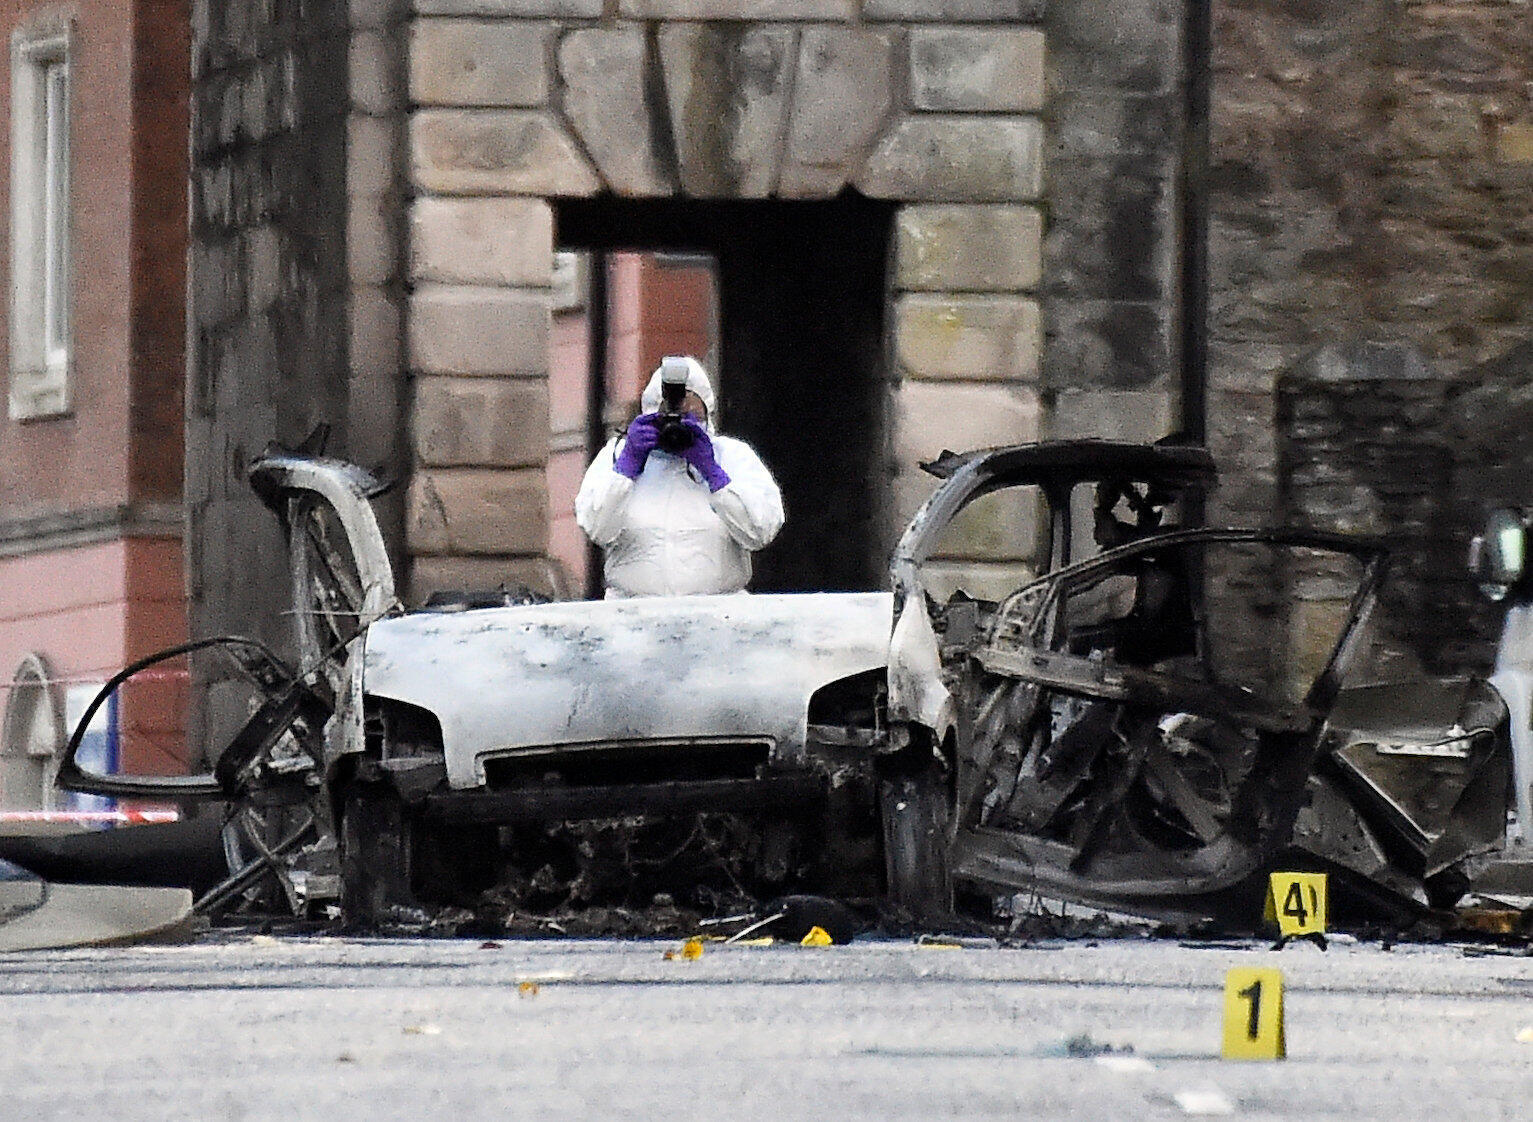 Forensic police inspects car wreck after suspected bomb explosion